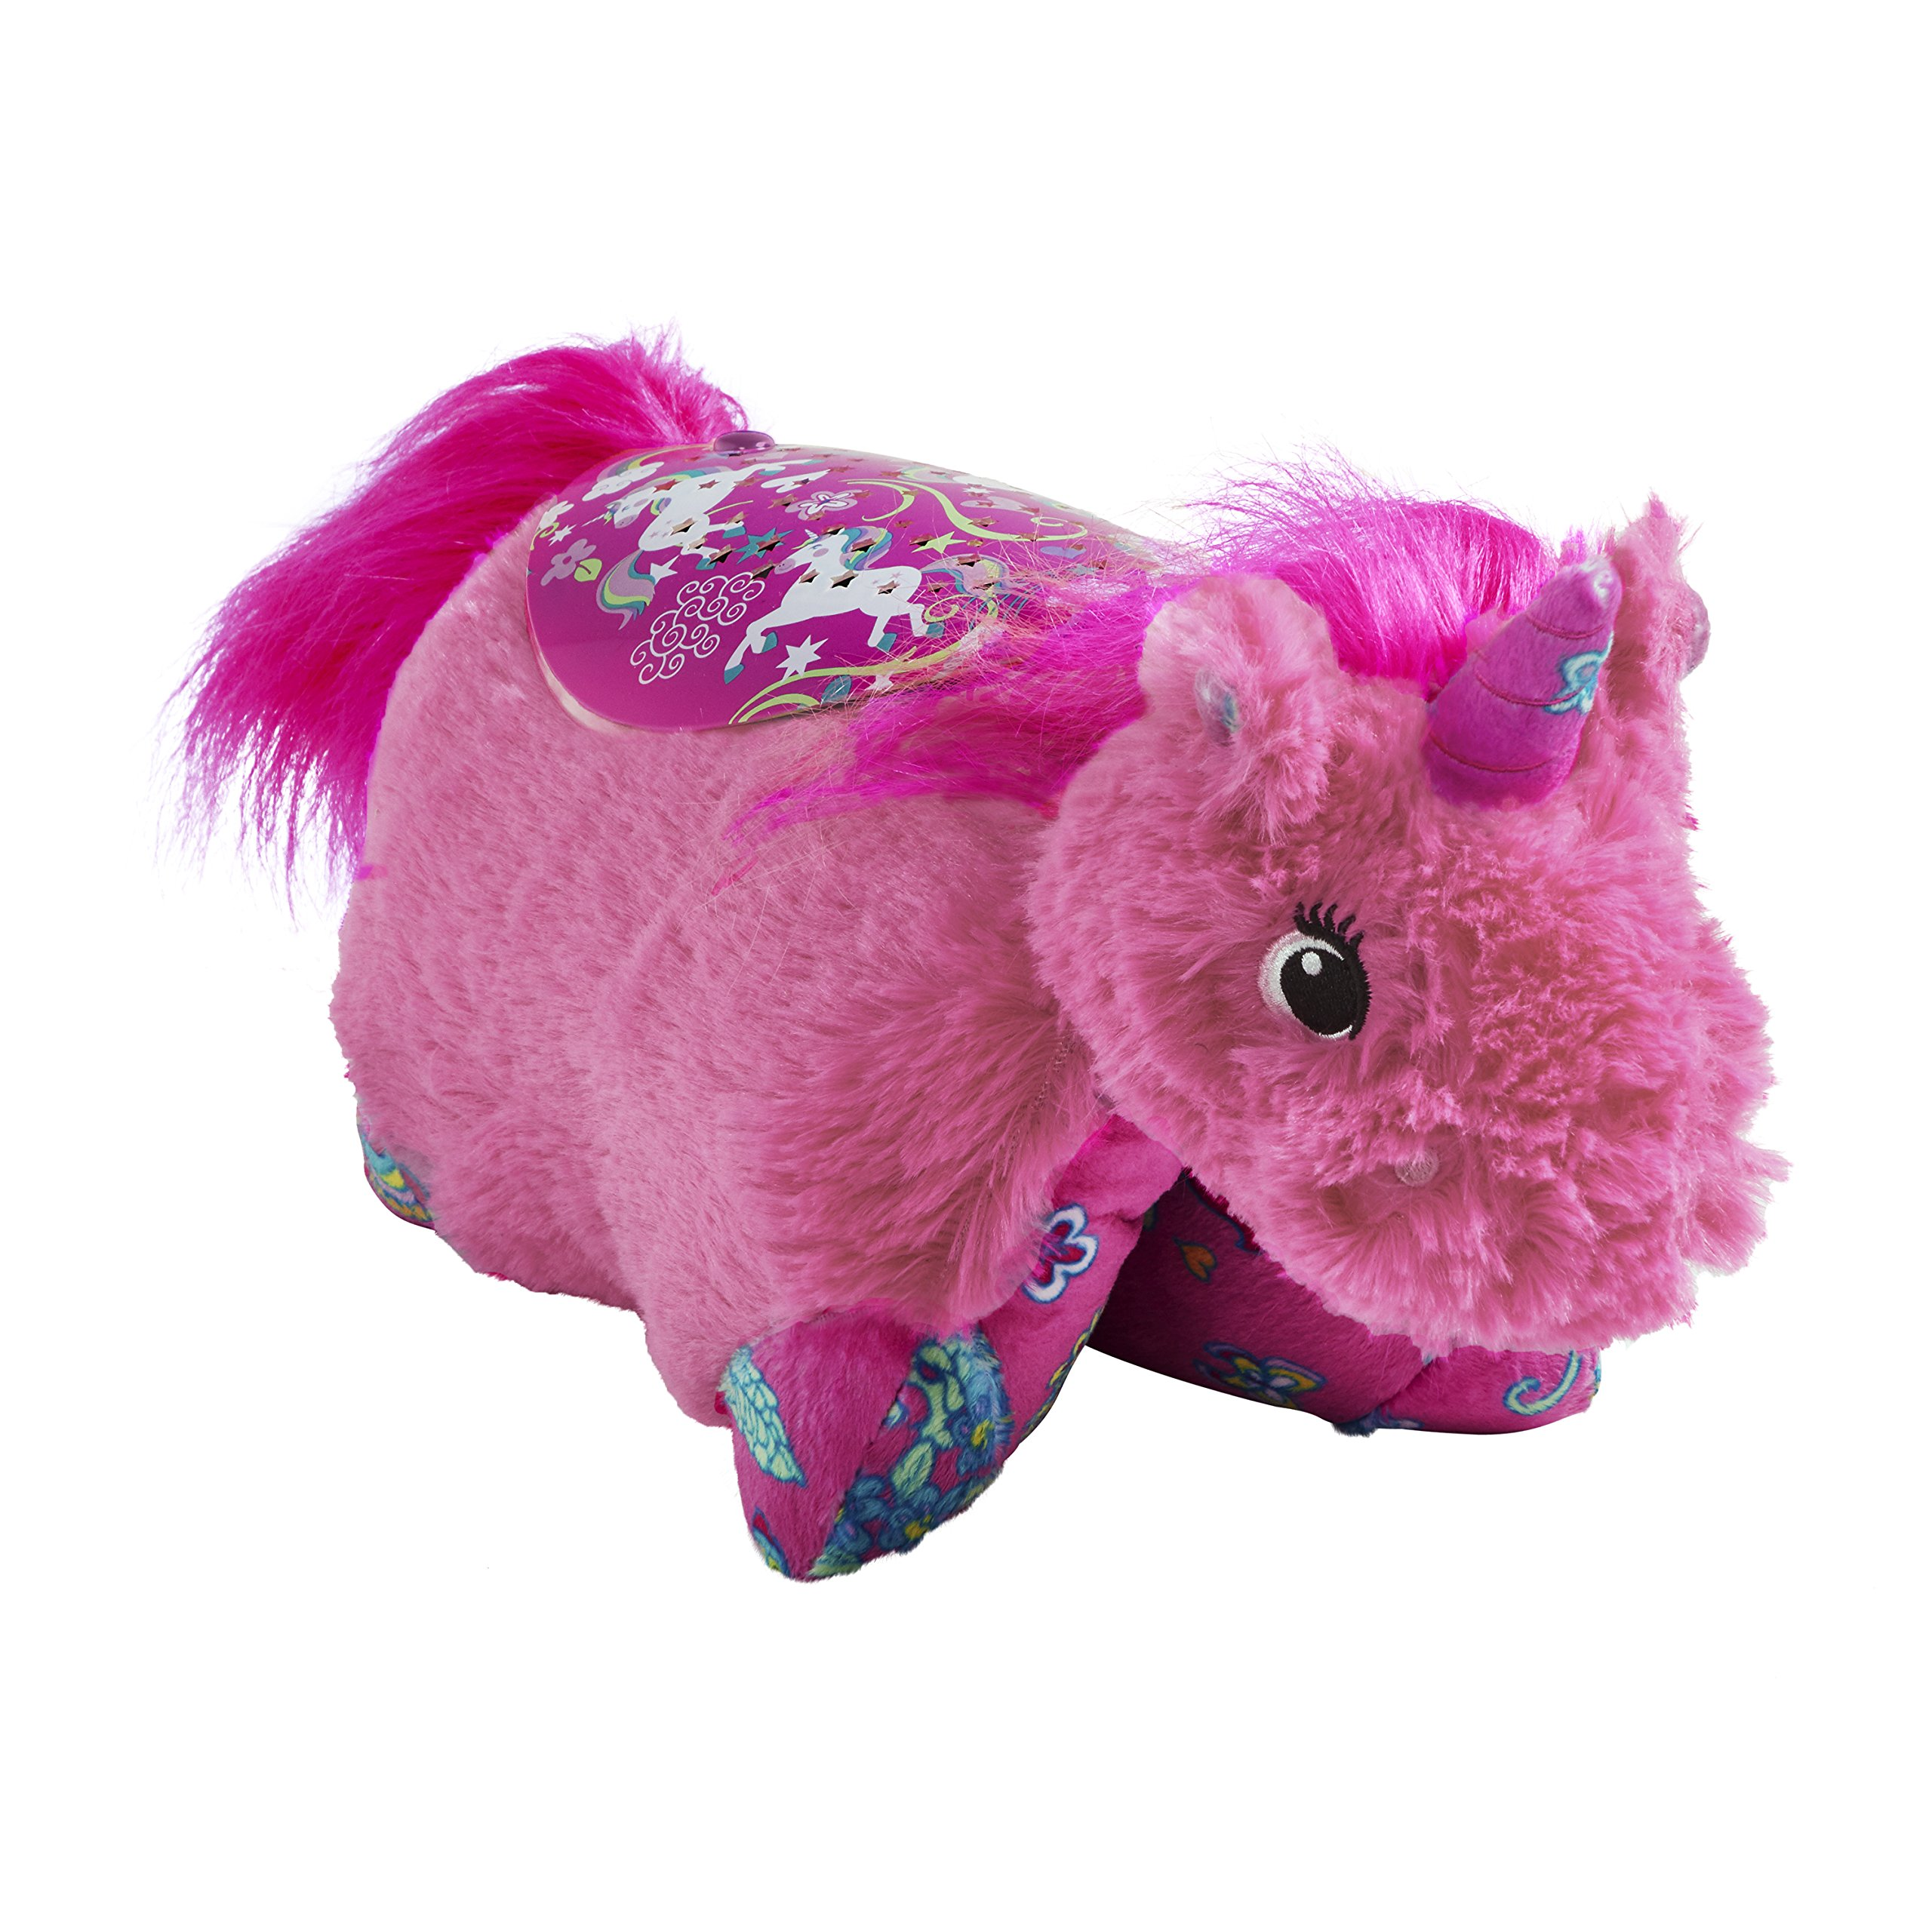 Pillow Pets Sleep Time Lites, Colorful Pink Unicorn, Stuffed Animal Plush Night Light